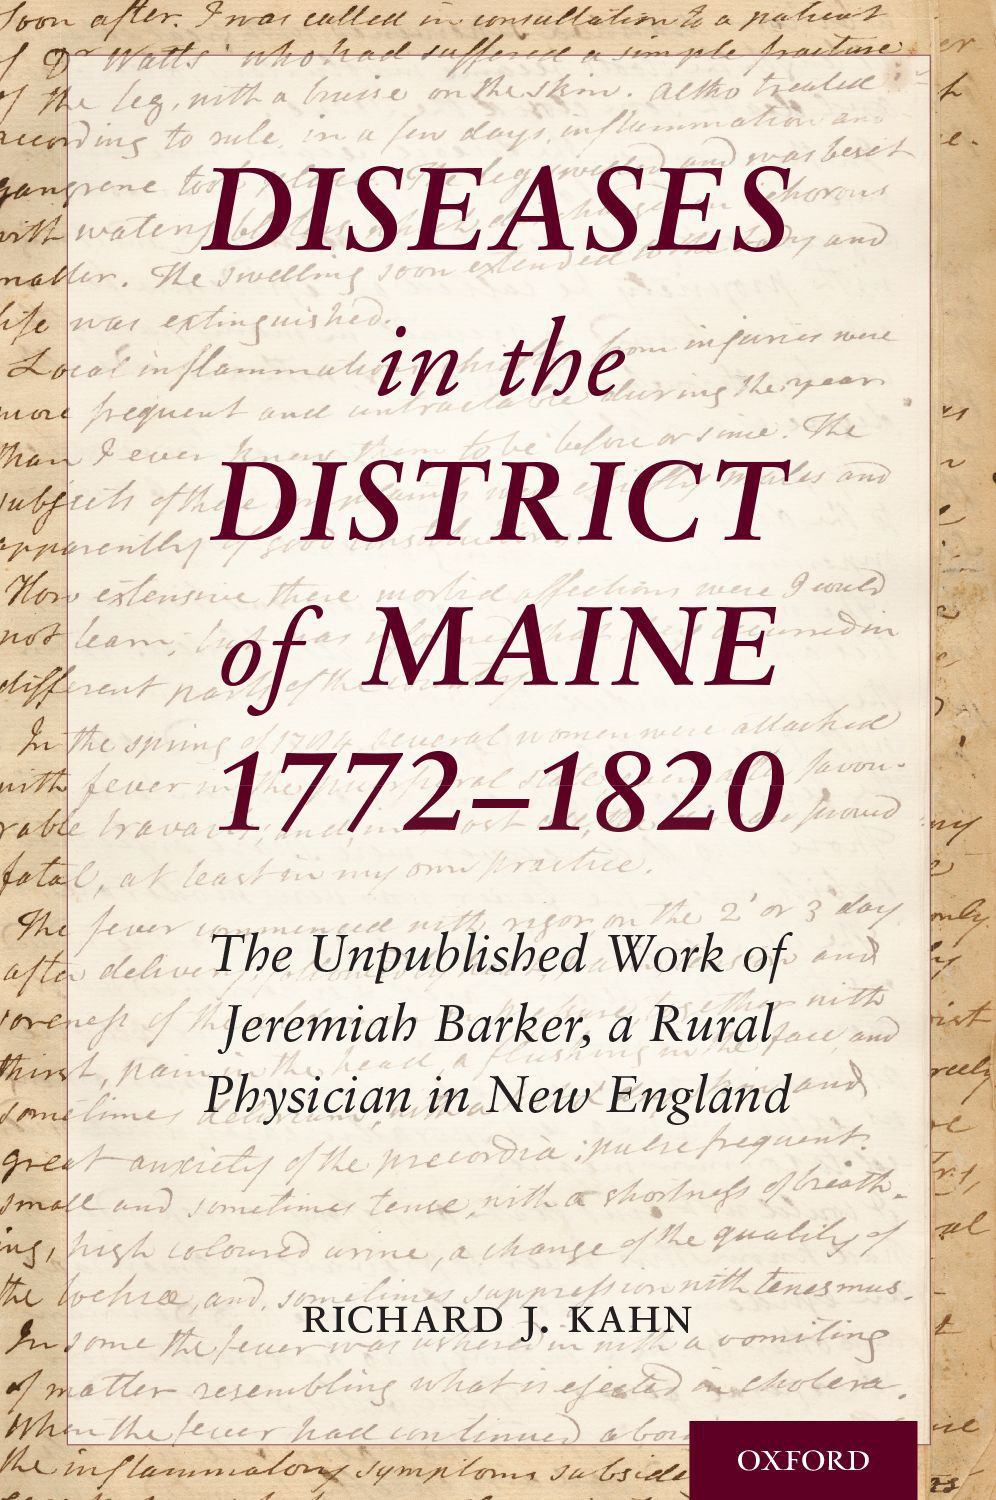 Diseases in the District of Maine 1772-1820: Epidemics Then and Now with Richard Kahn